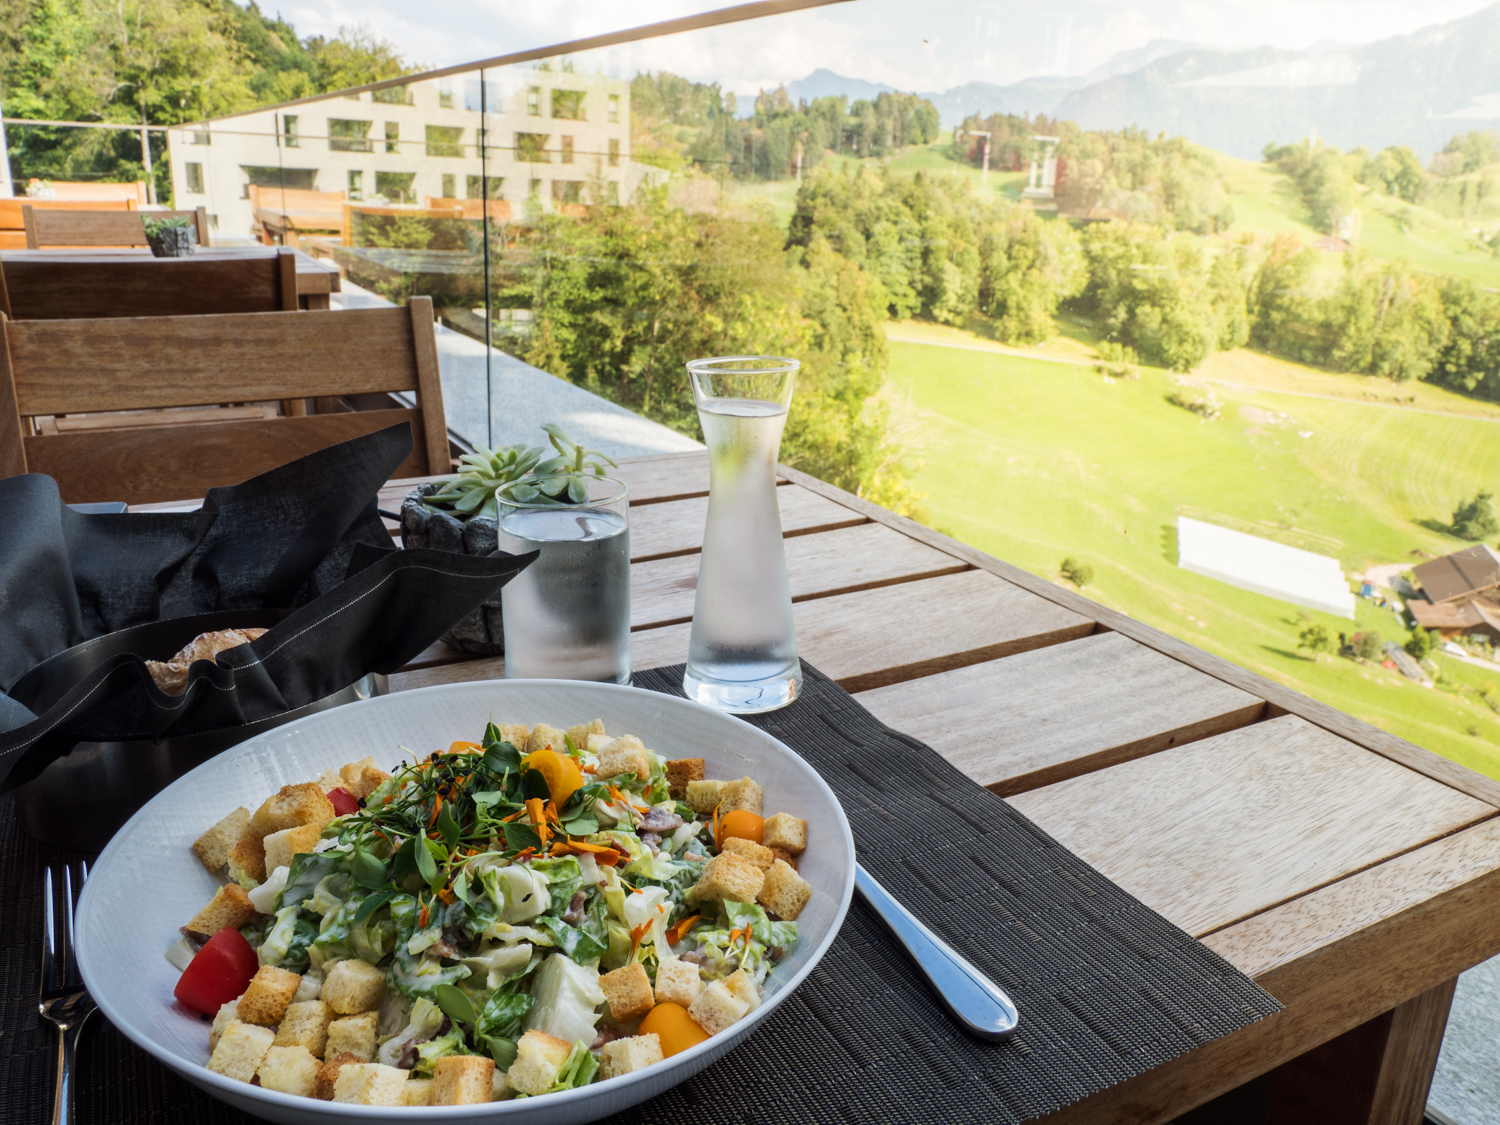 Buergenstock Wald Hotel, Buergenstock, Switzerland. Dinner with a view. Photo: Gunjan Virk.